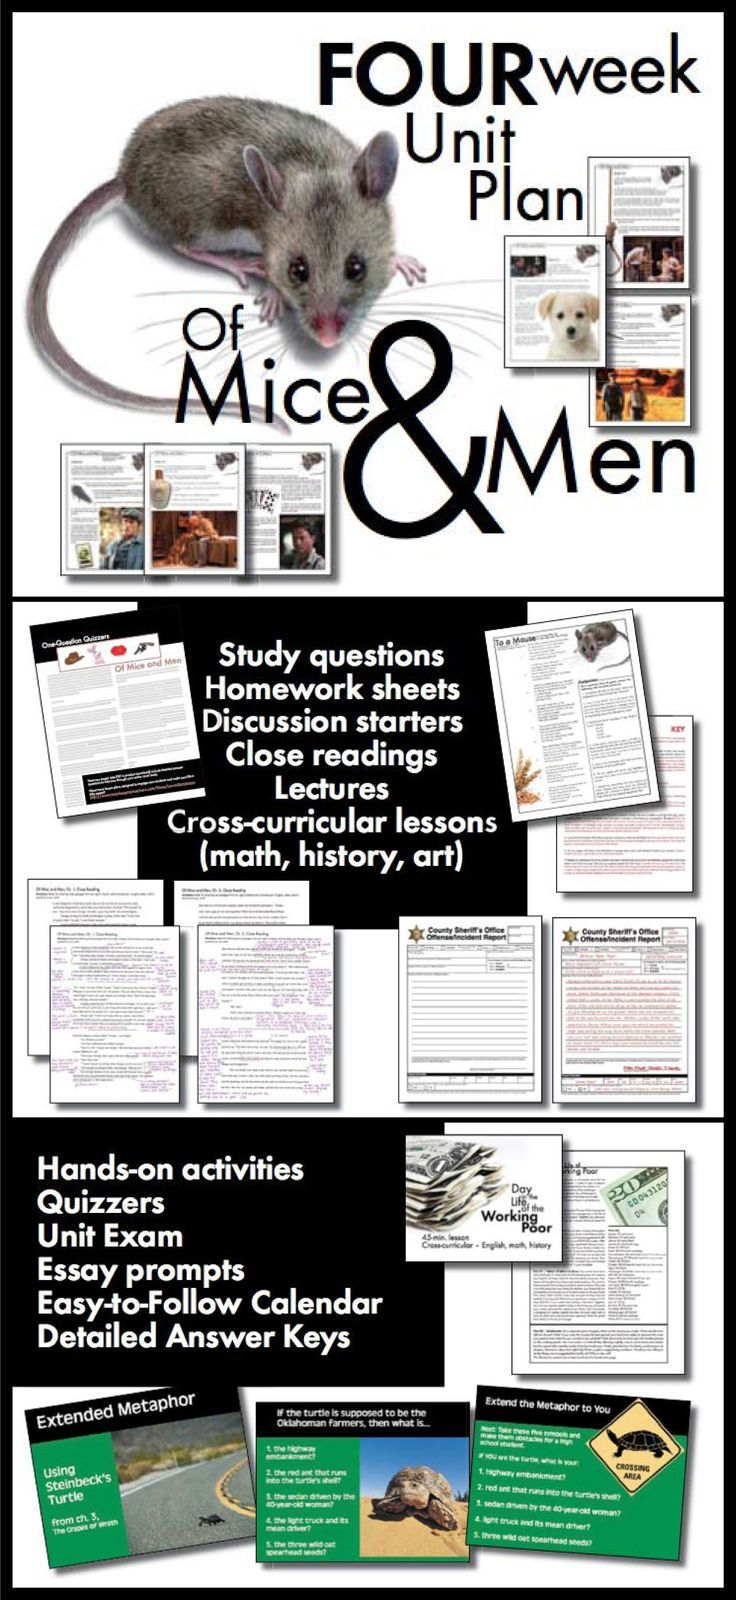 17 best images about classroom of mice and men of mice and men unit plan four full weeks of dynamic lessons ccss